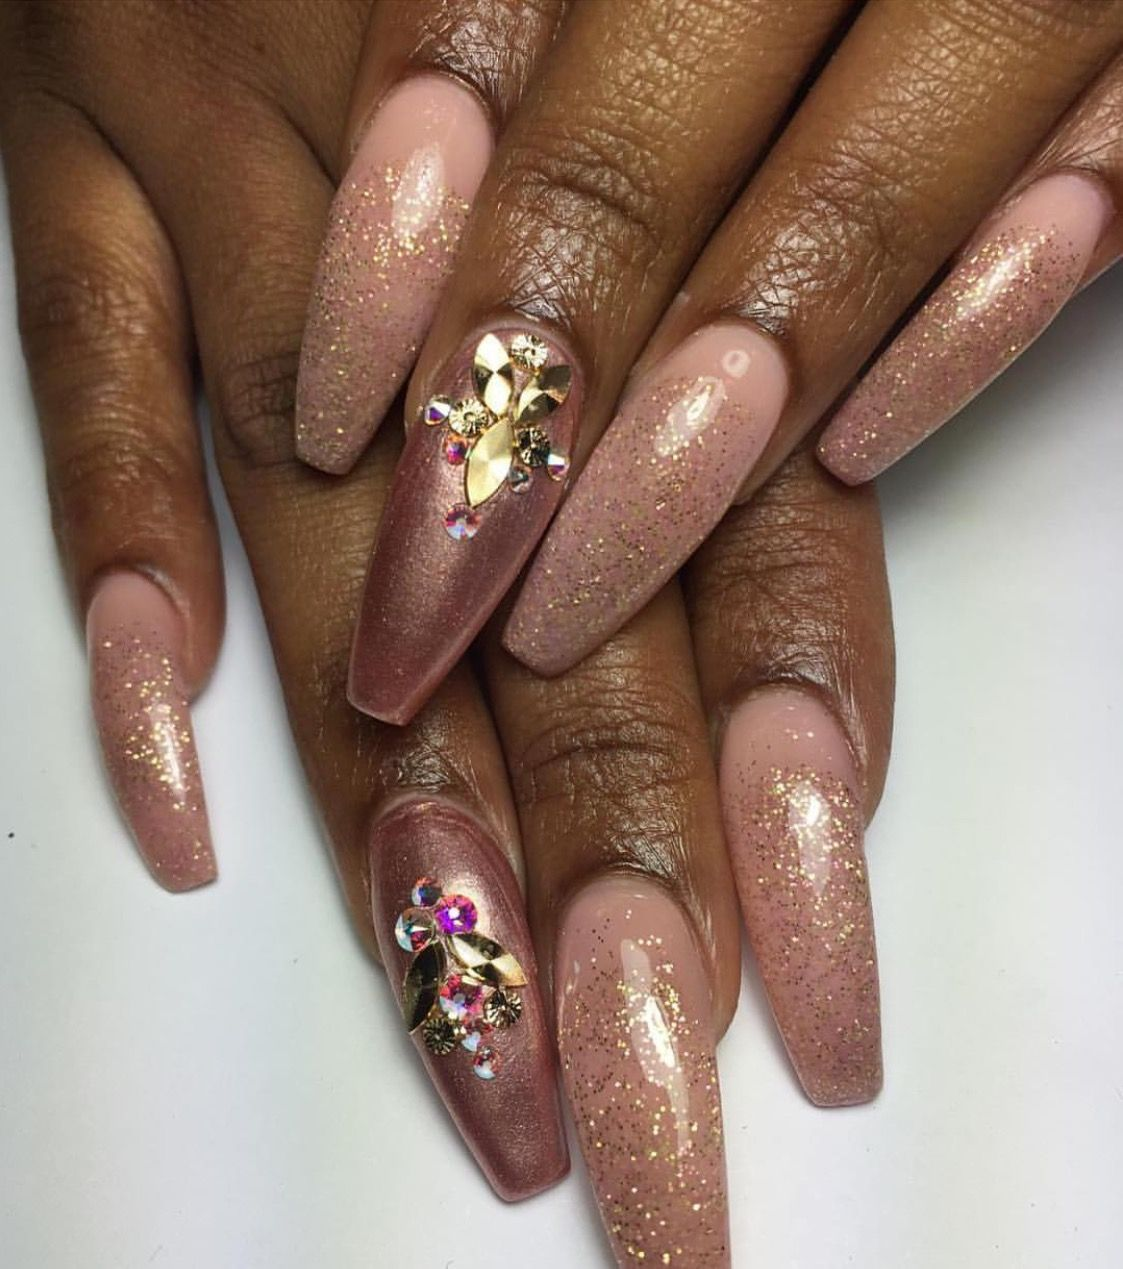 Pin by Quenesha on N A I L S | Pinterest | Nail nail